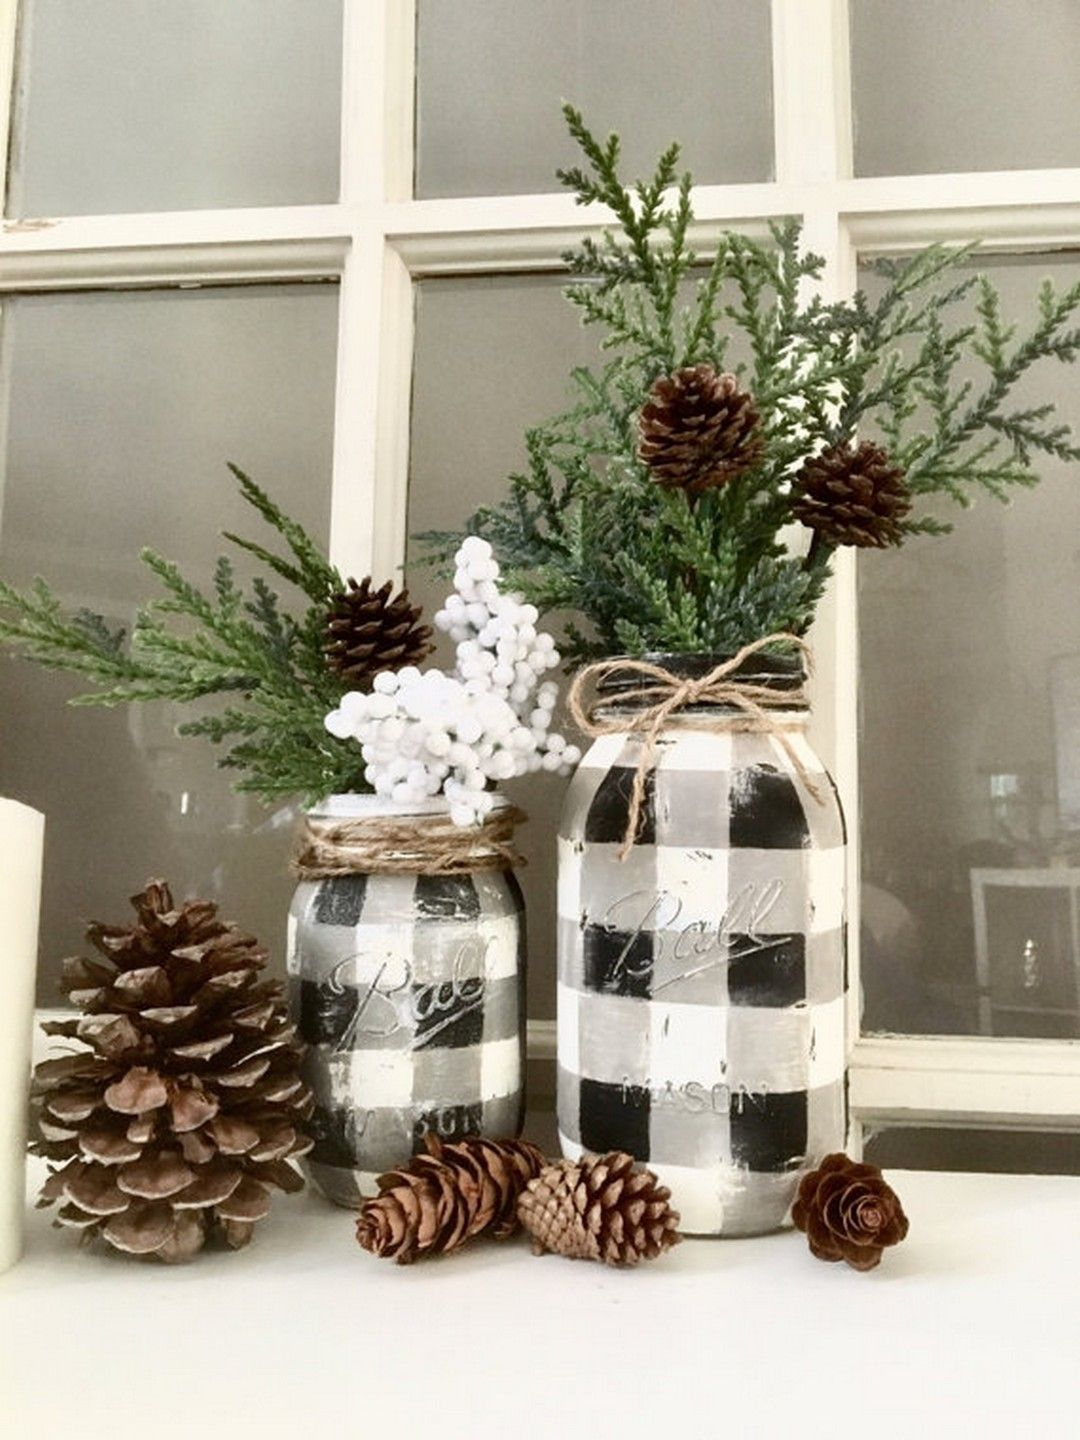 10 Affordable Buffalo Plaid Christmas Decor on a Budget | Pinterest ...